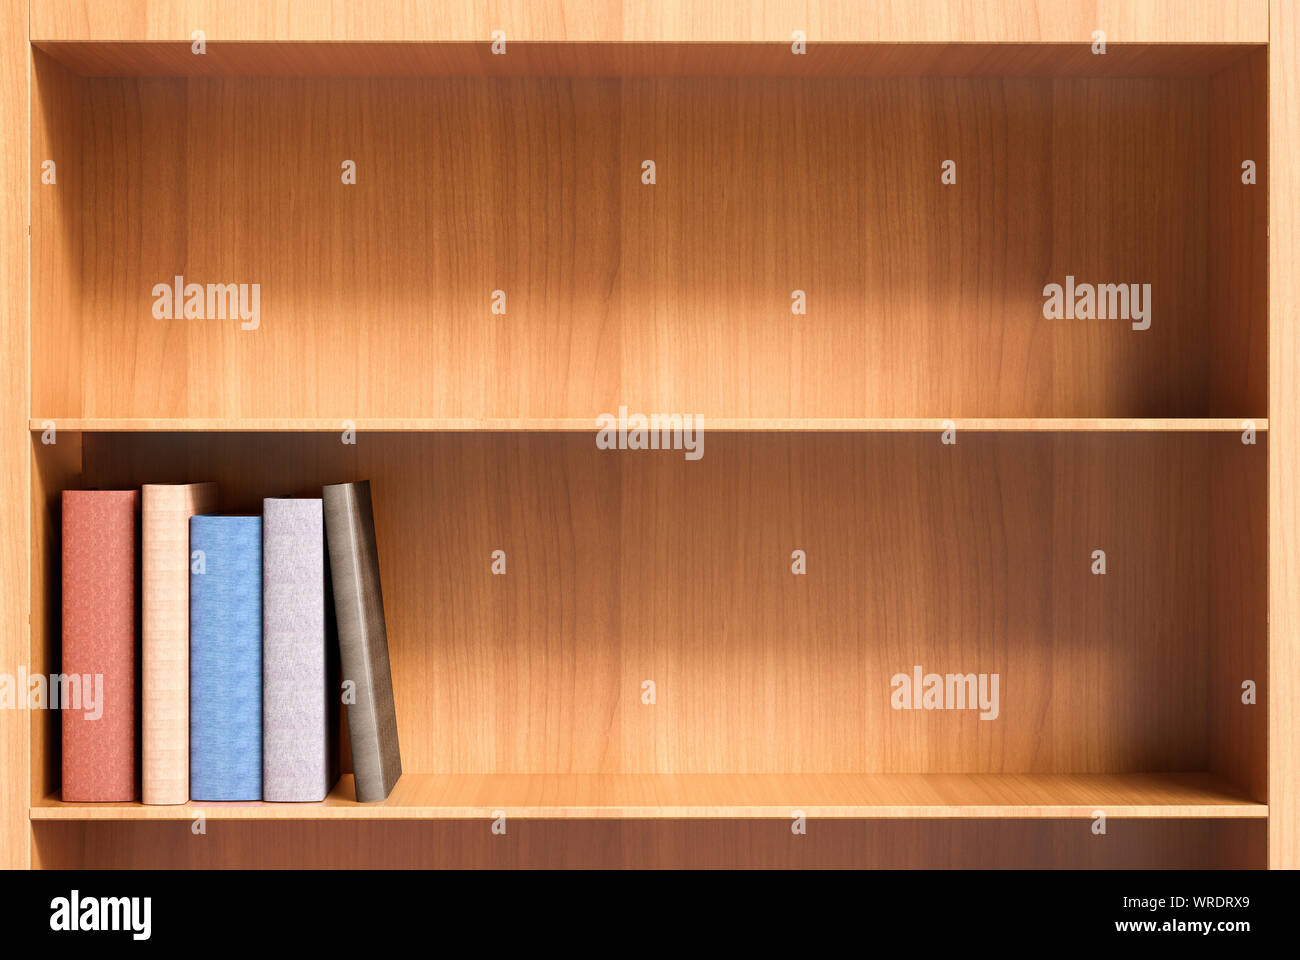 Two Shelves (one Empty) Of A Wooden Bookcase With A Few